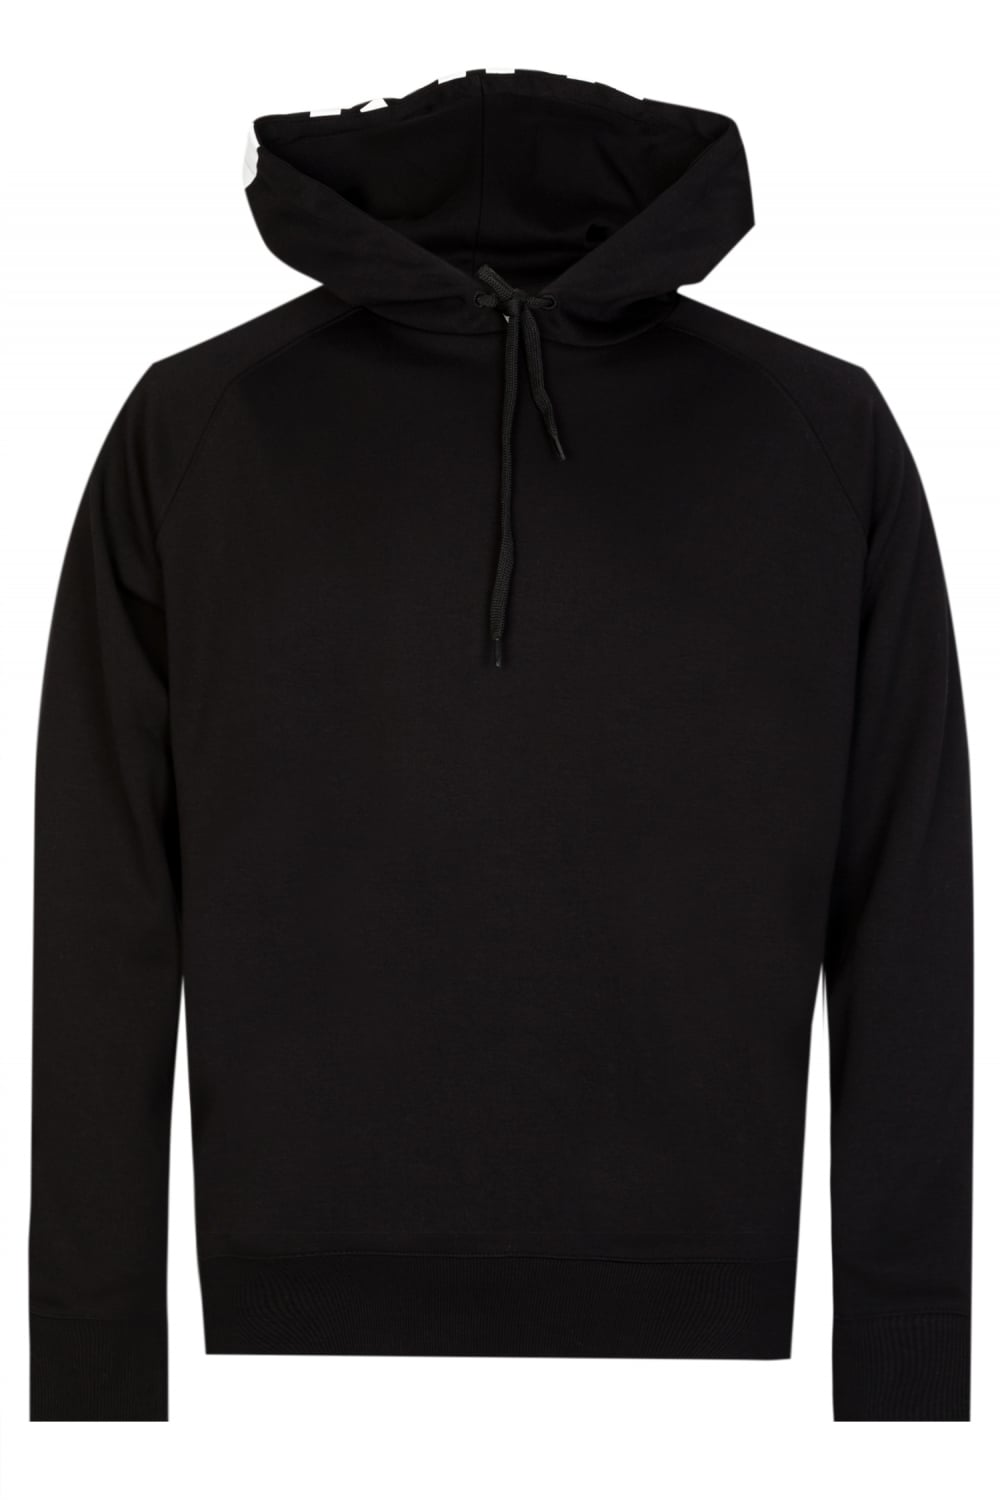 ed7098b89 Hugo by Hugo Boss Dayfun Hooded Sweatshirt